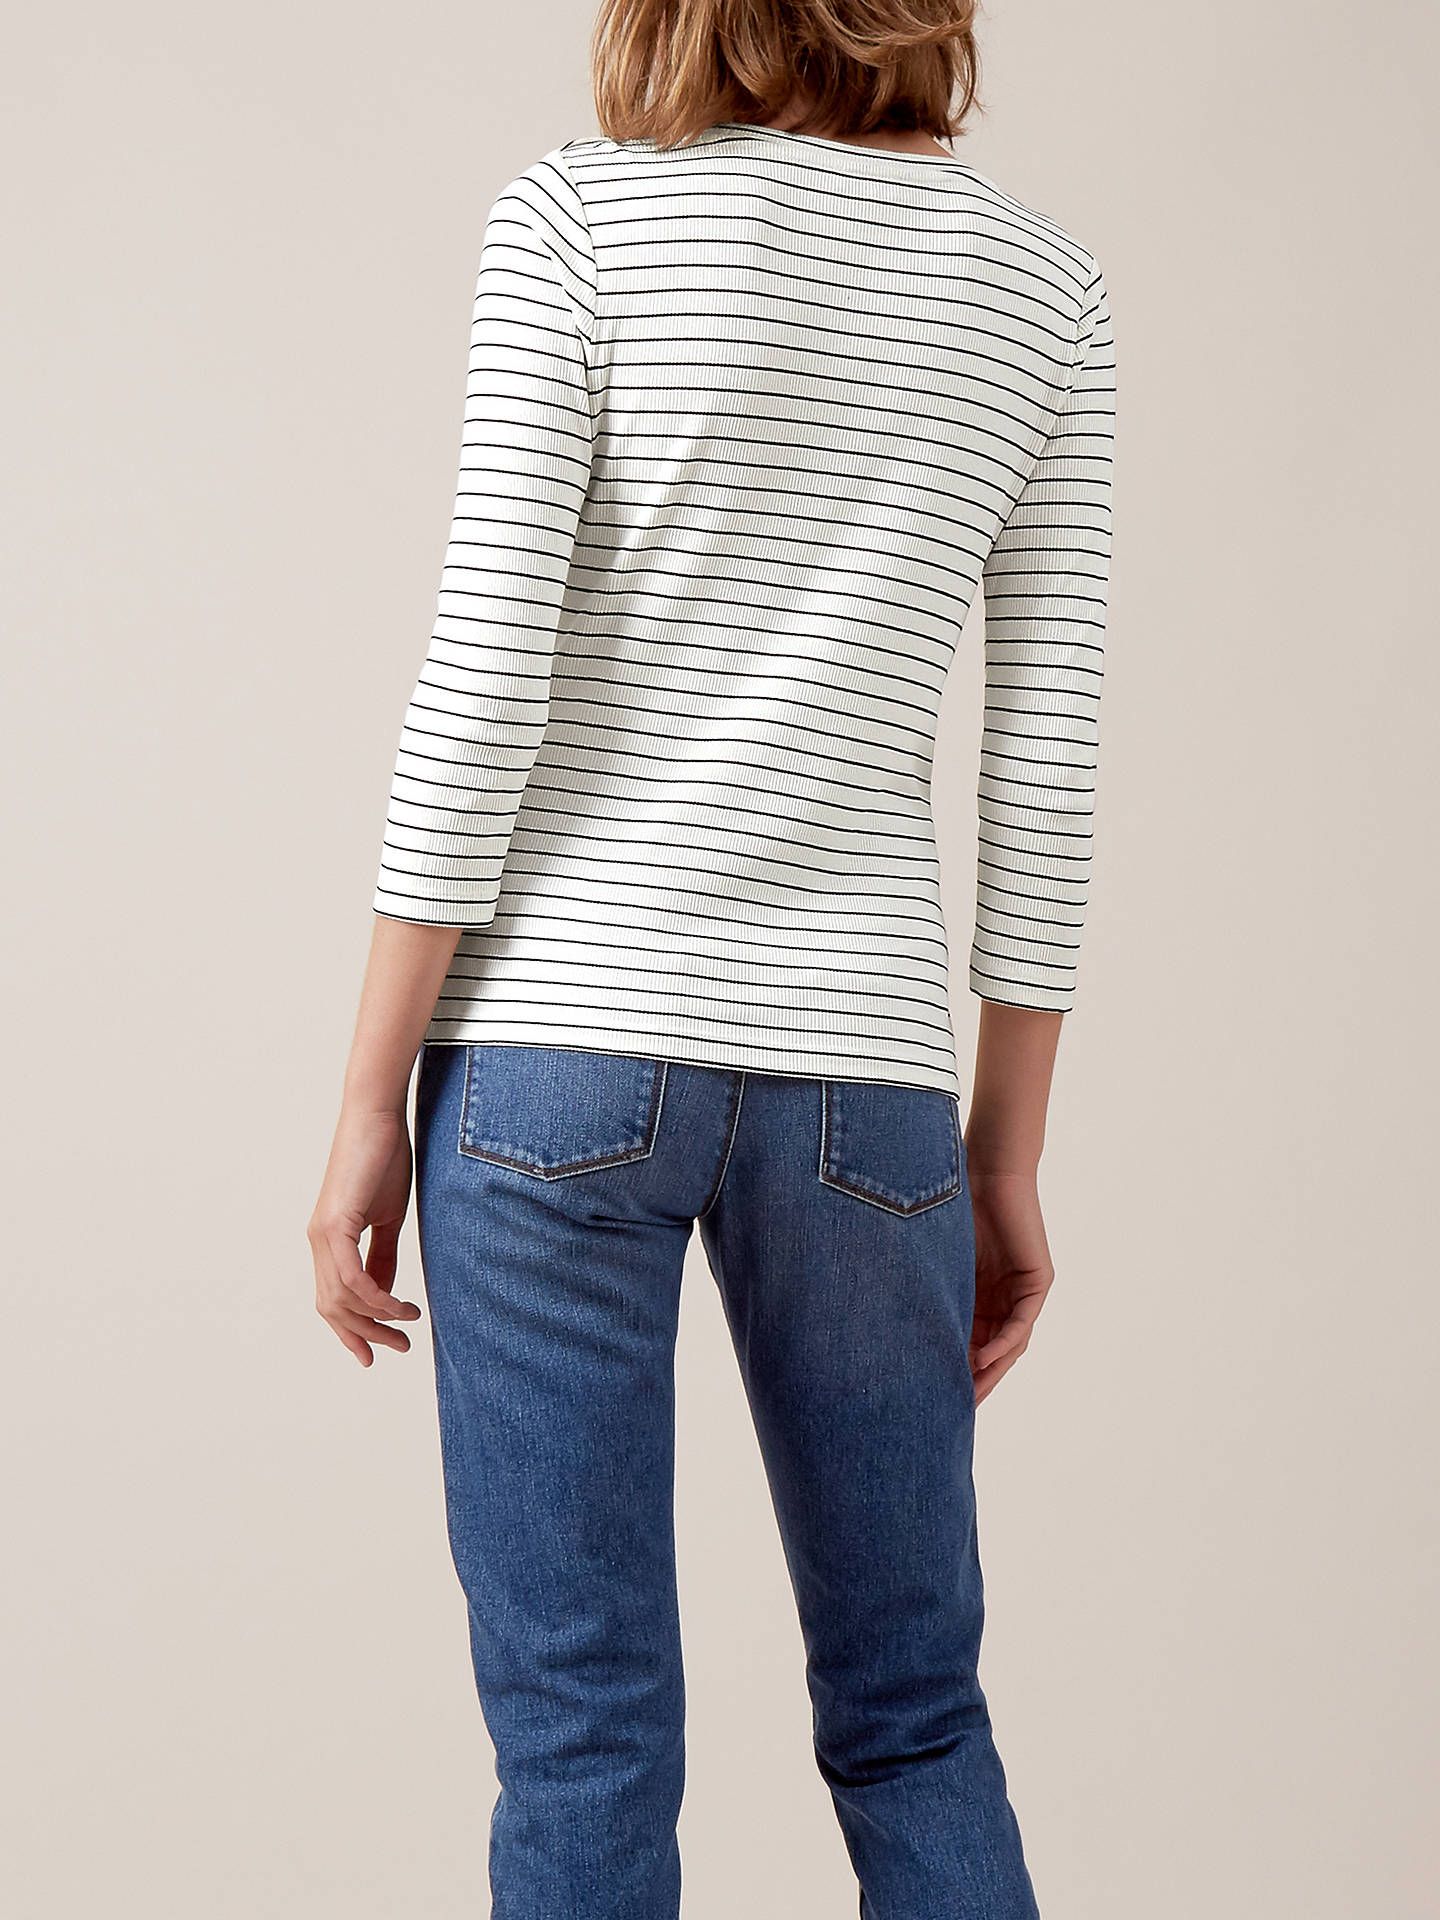 Buy Hobbs Alice Stripe Top, French Blue/Ivory, XS Online at johnlewis.com